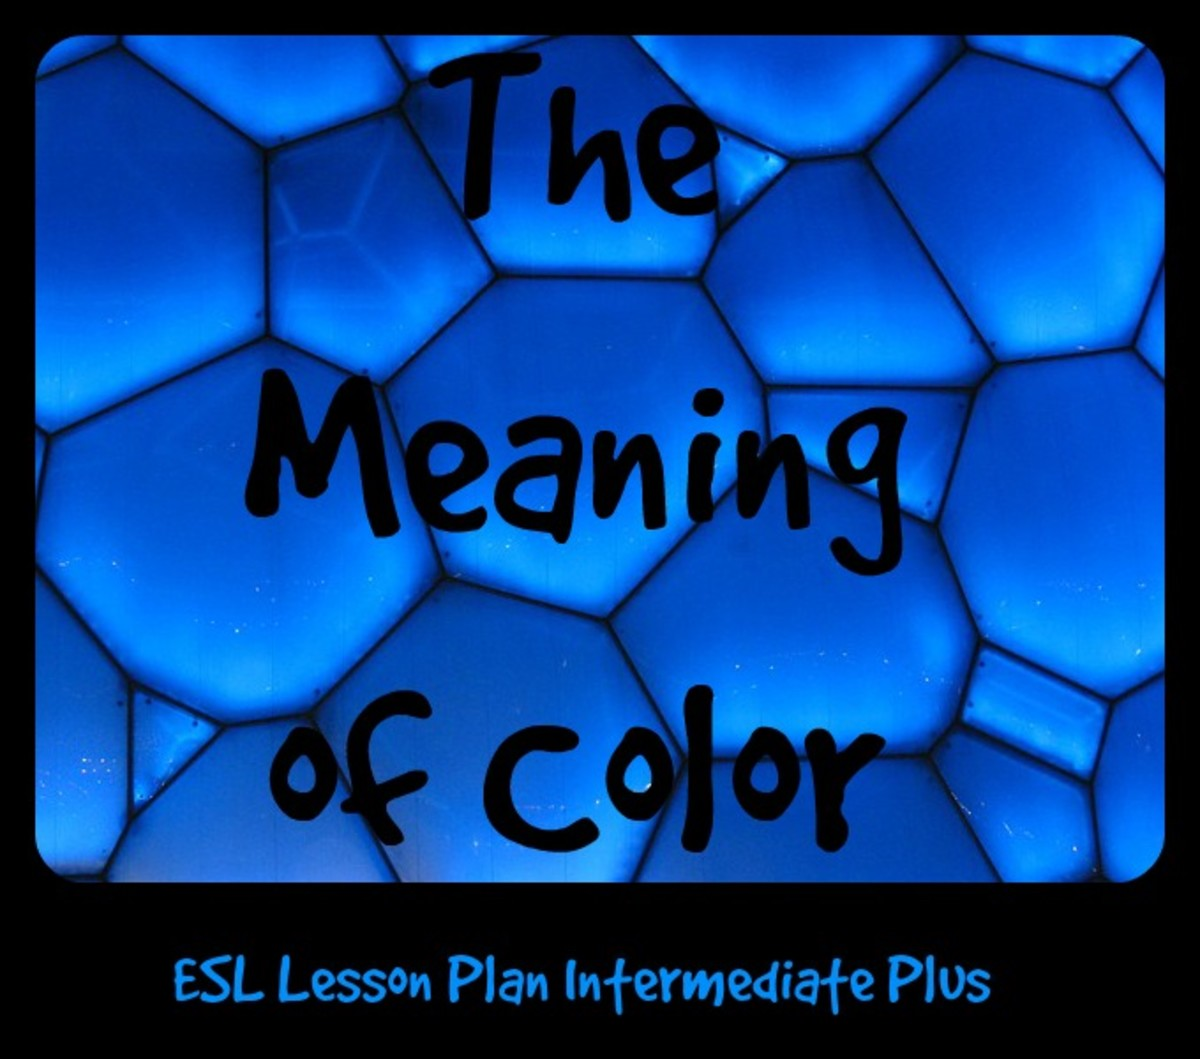 esl-lesson-plan-intermediate-plus-the-meaning-of-color